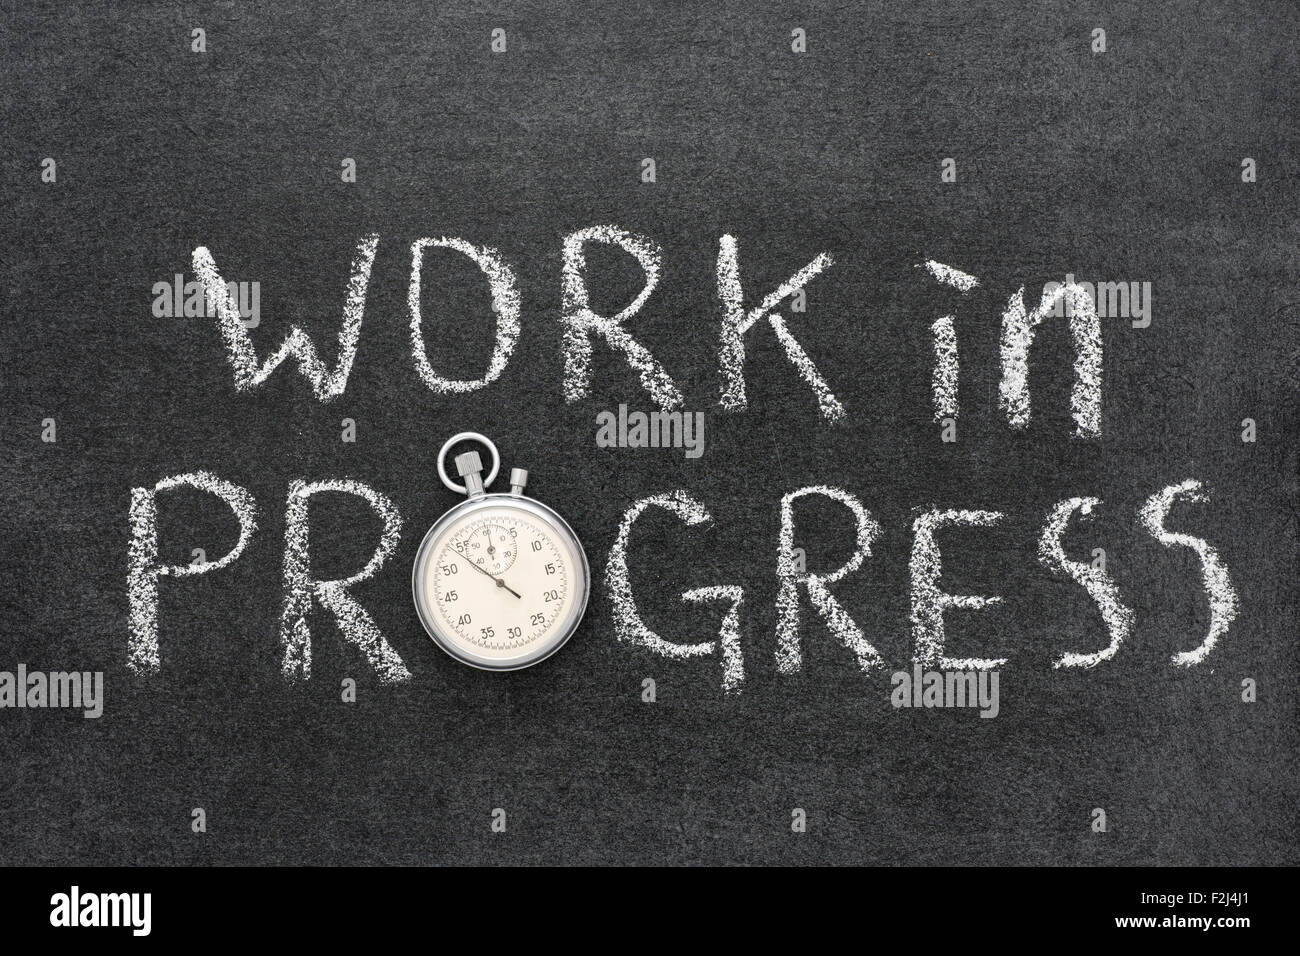 work in progress phrase handwritten on chalkboard with vintage precise stopwatch used instead of O - Stock Image